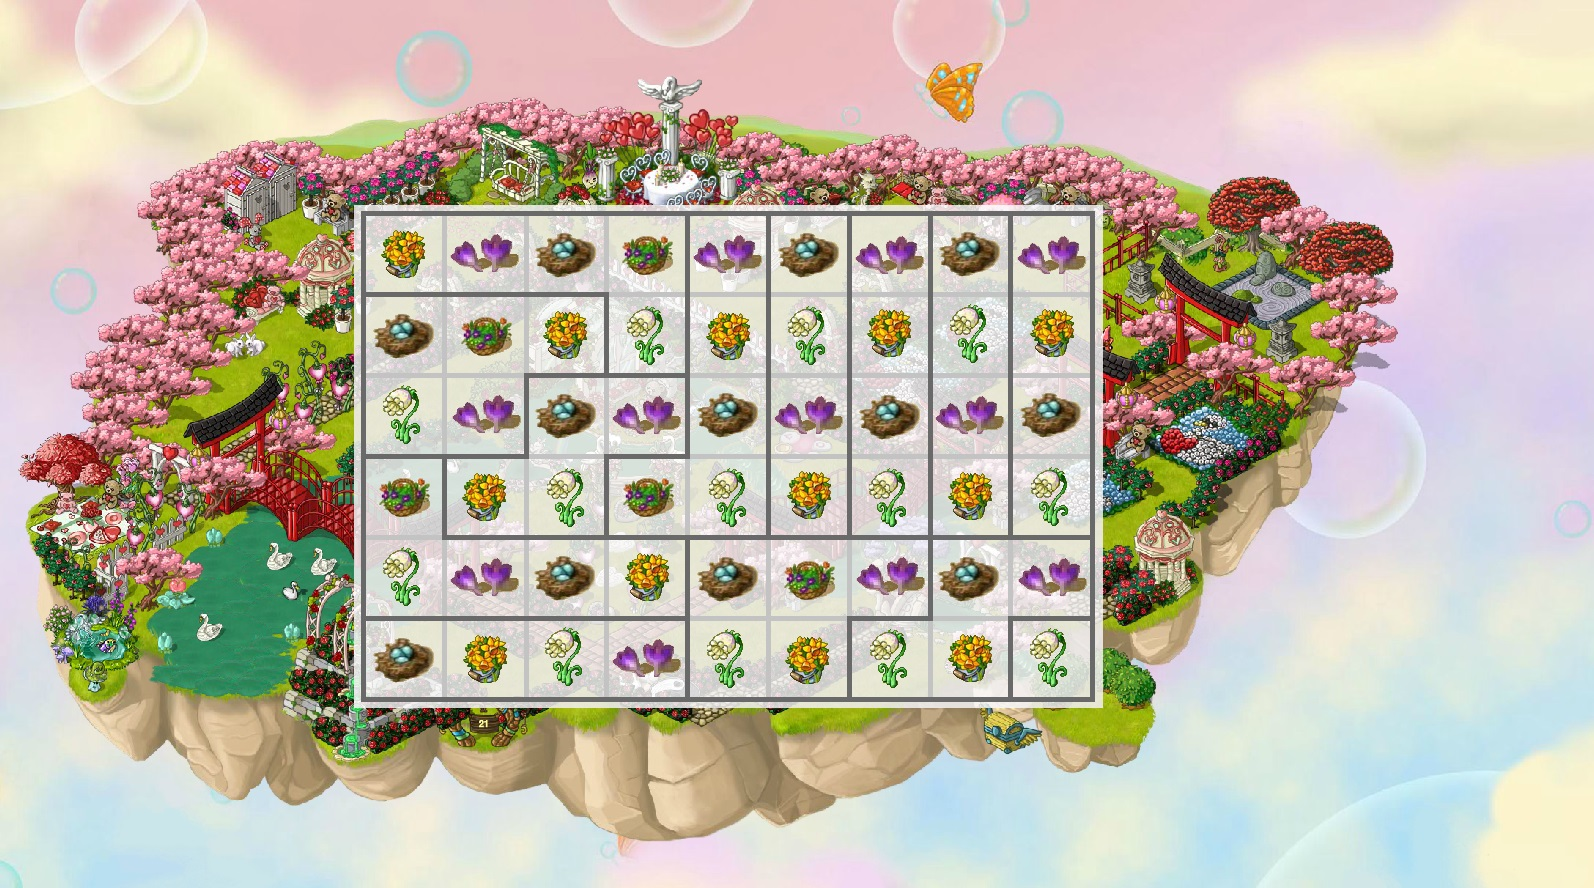 Name:  Gift Box Puzzler - Welcoming Spring 2019 - answer.jpg Views: 22 Size:  537.3 KB